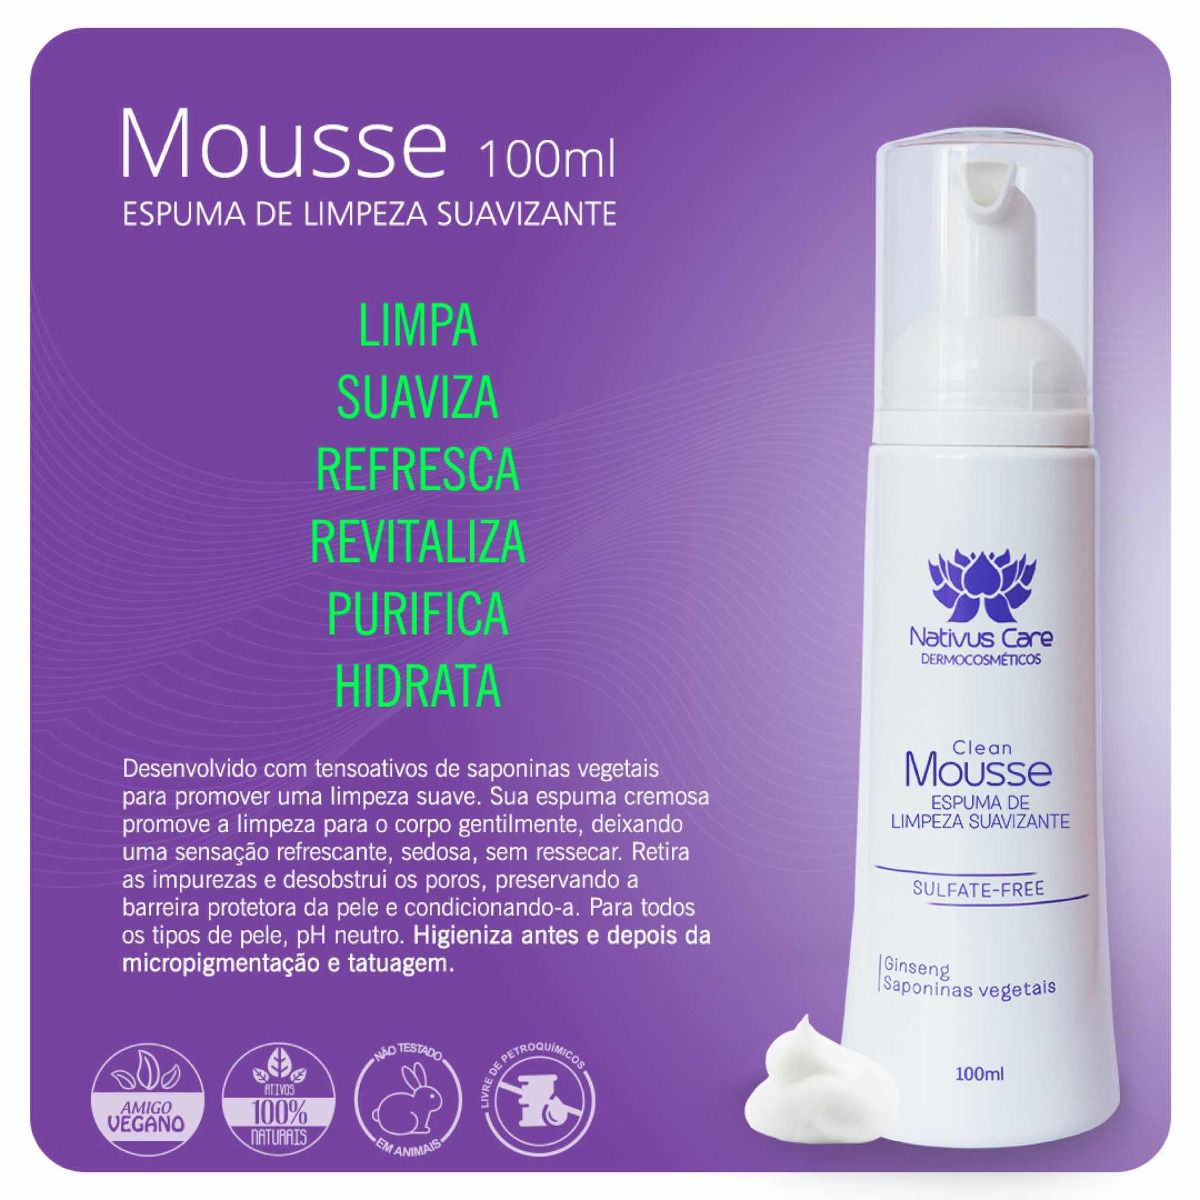 Clean Mousse Limpeza Suave Tattoo Micropigmentação Nativus Care 100ml